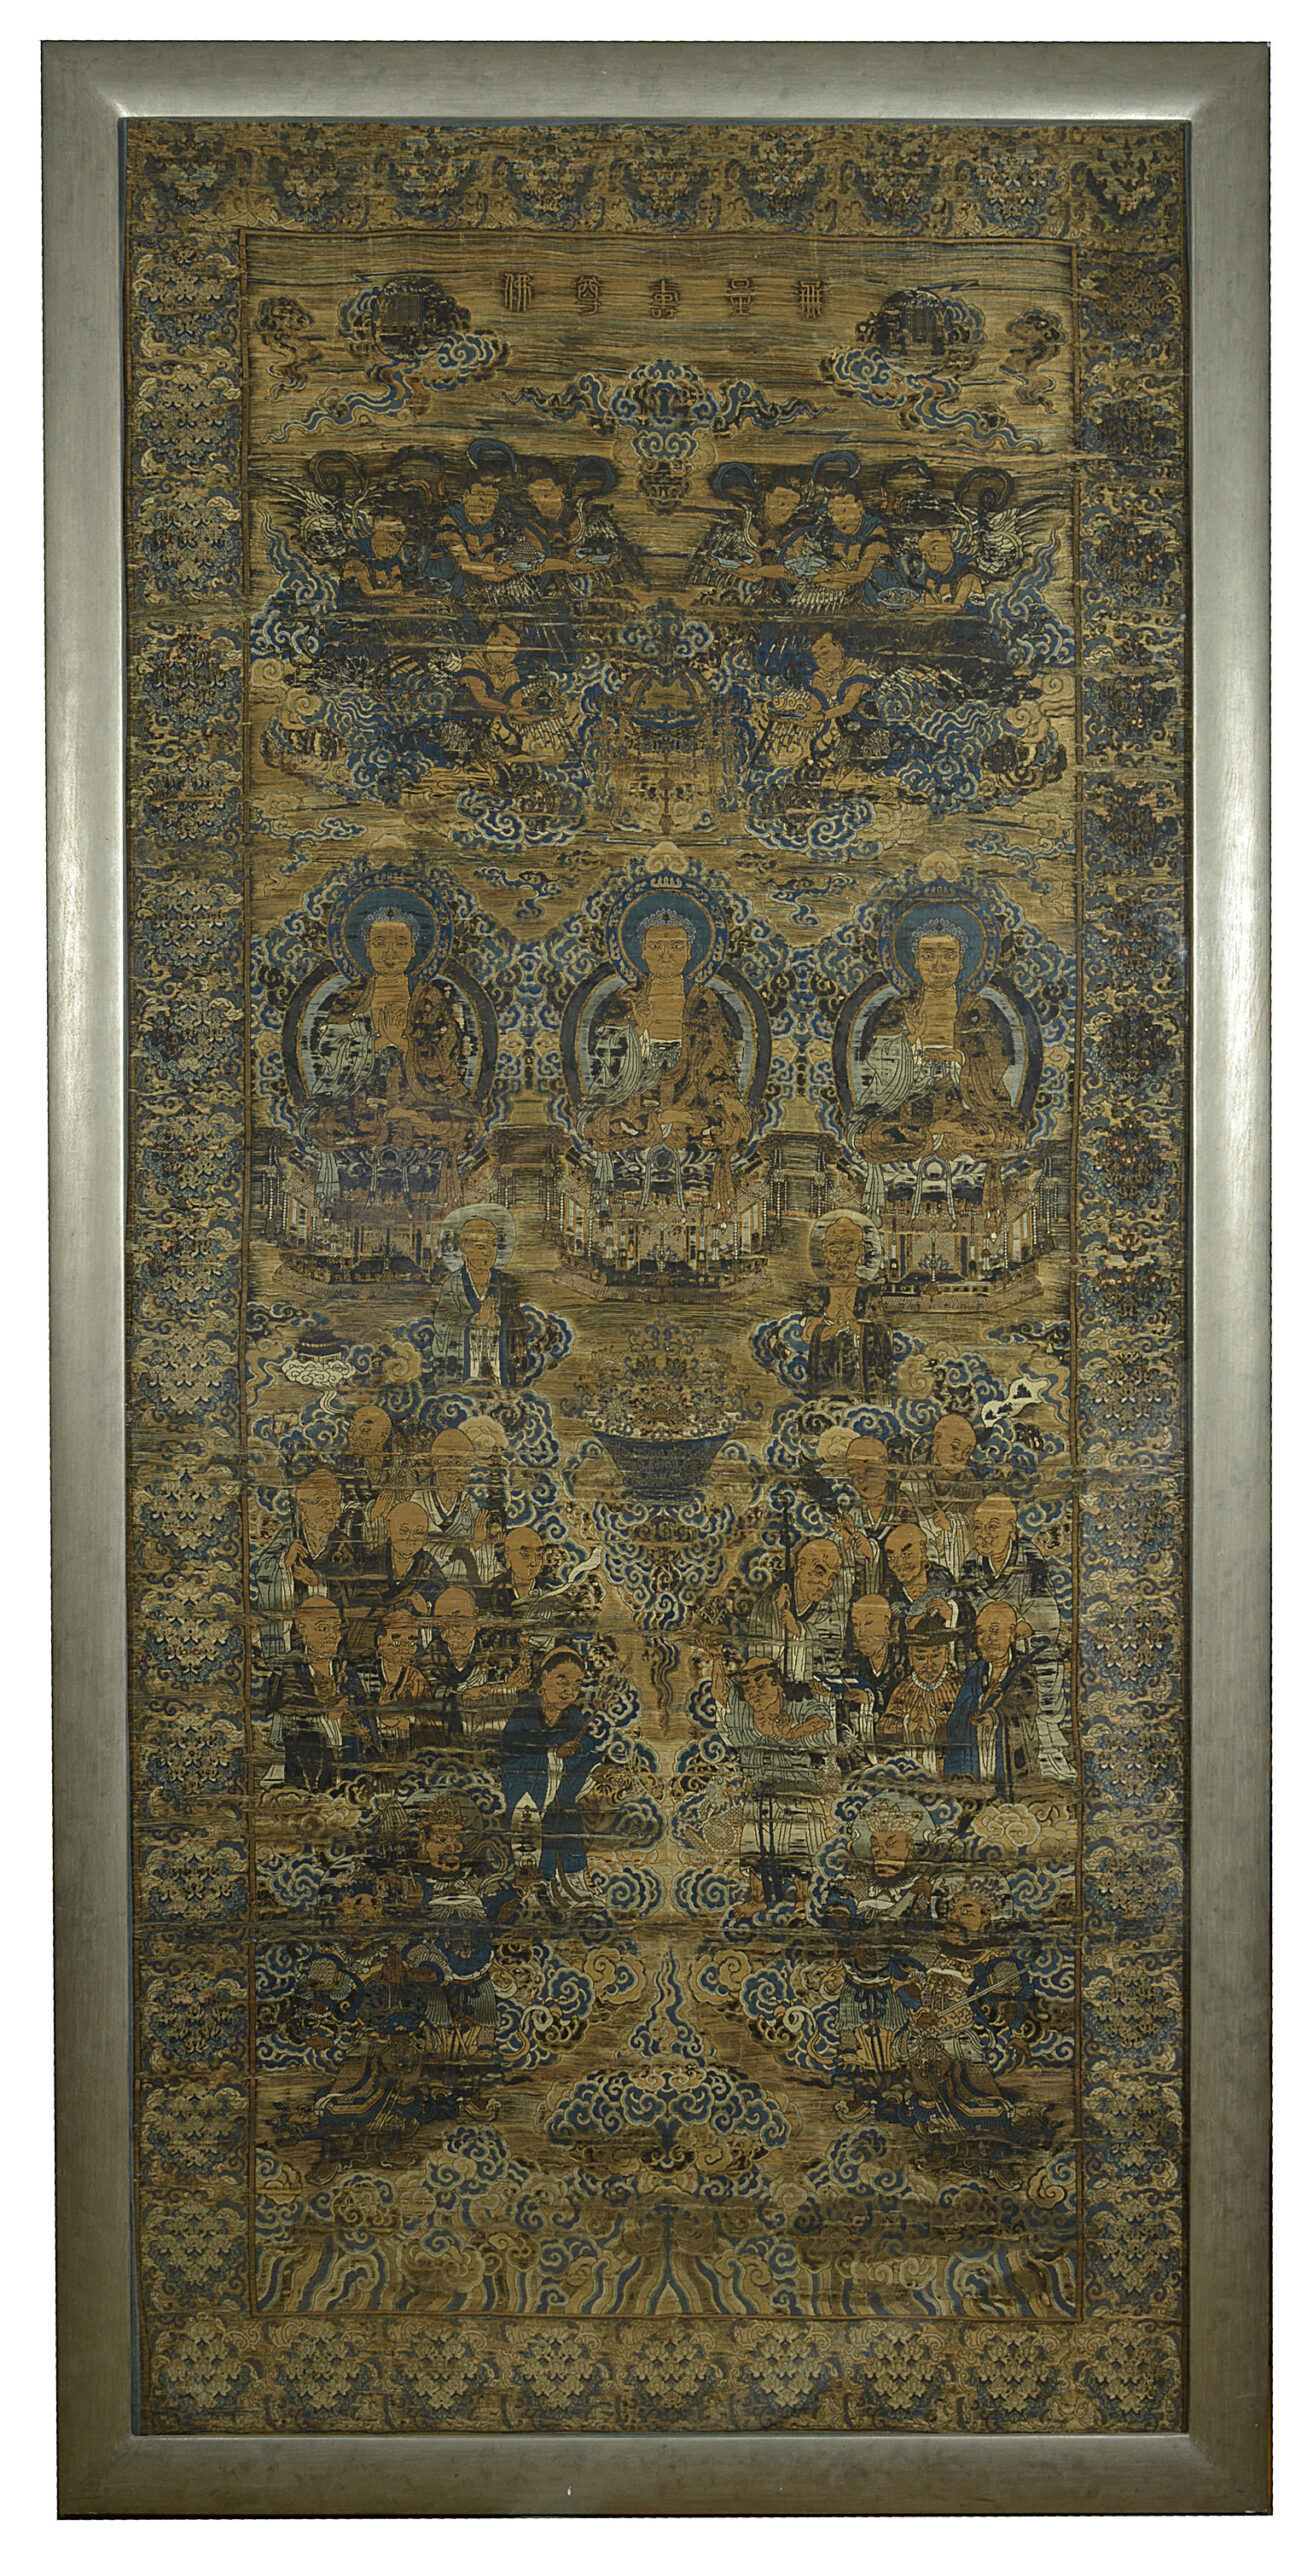 An Important Silk Brocade Hanging of the Buddhist Paradise, Qianlong Period (1736-1795) L: 154.5cm W: 72.5 cm